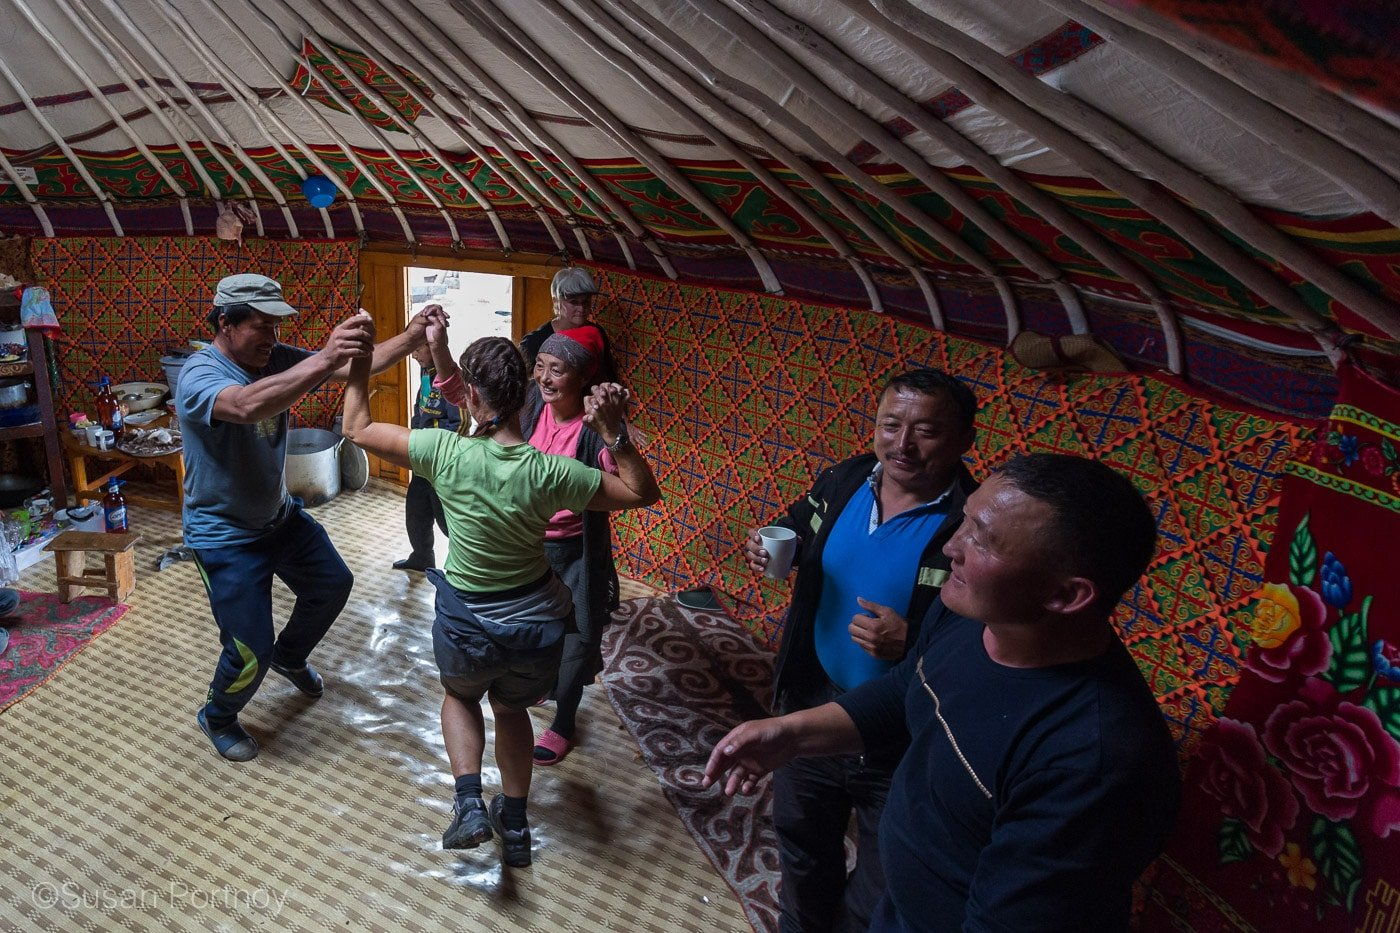 People dancing inside a ger at a Kazakh Mongolian Dance Party - The Insatiable Traveler